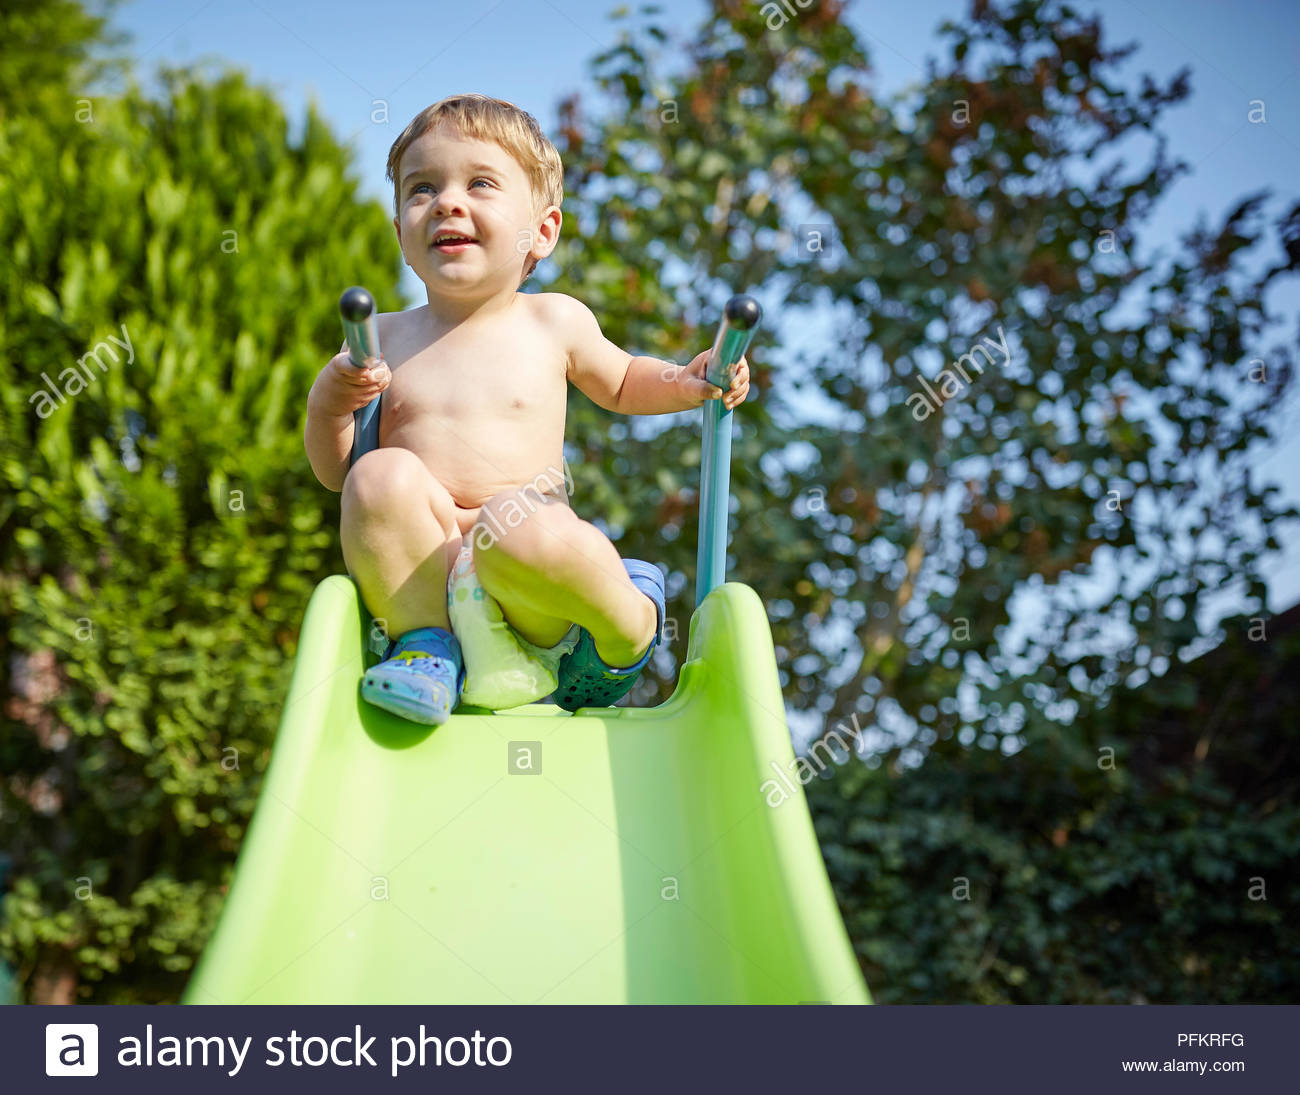 Toddler at the top of a slide outside - Stock Image